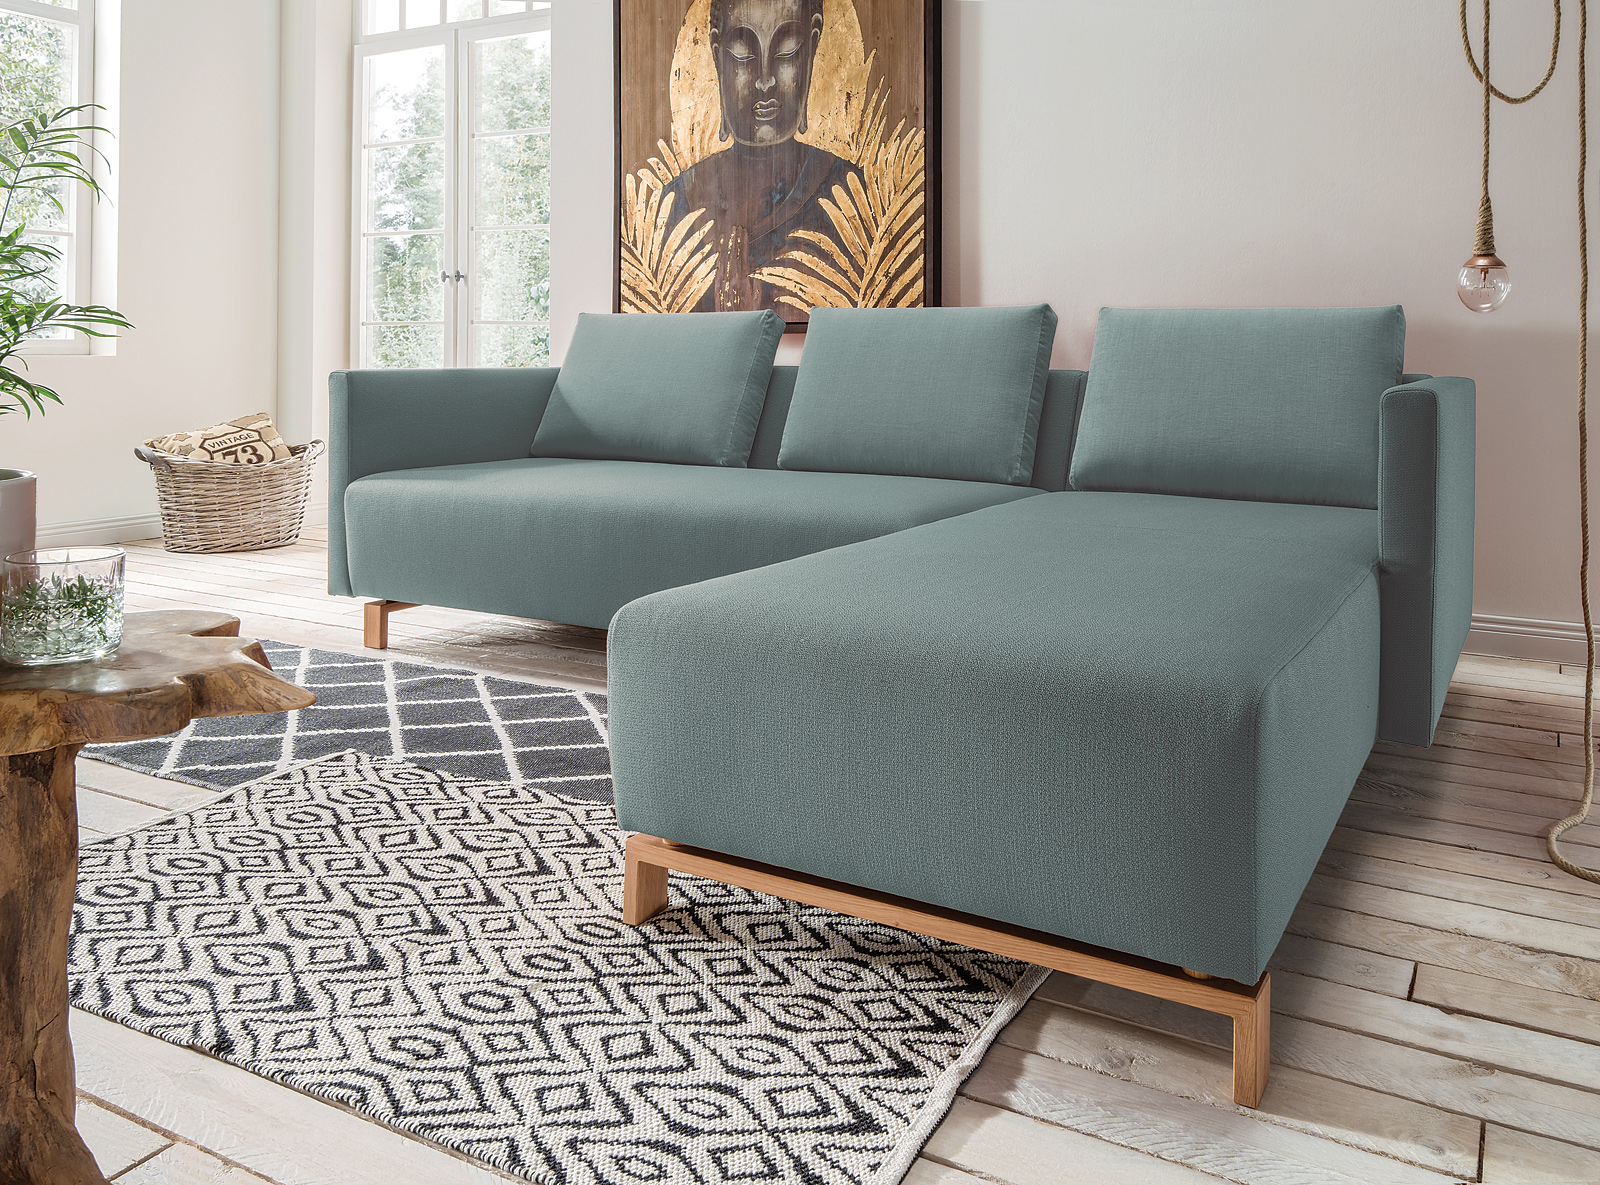 Recammiere Couch Mit Recamiere Quotfino Vegan Quot